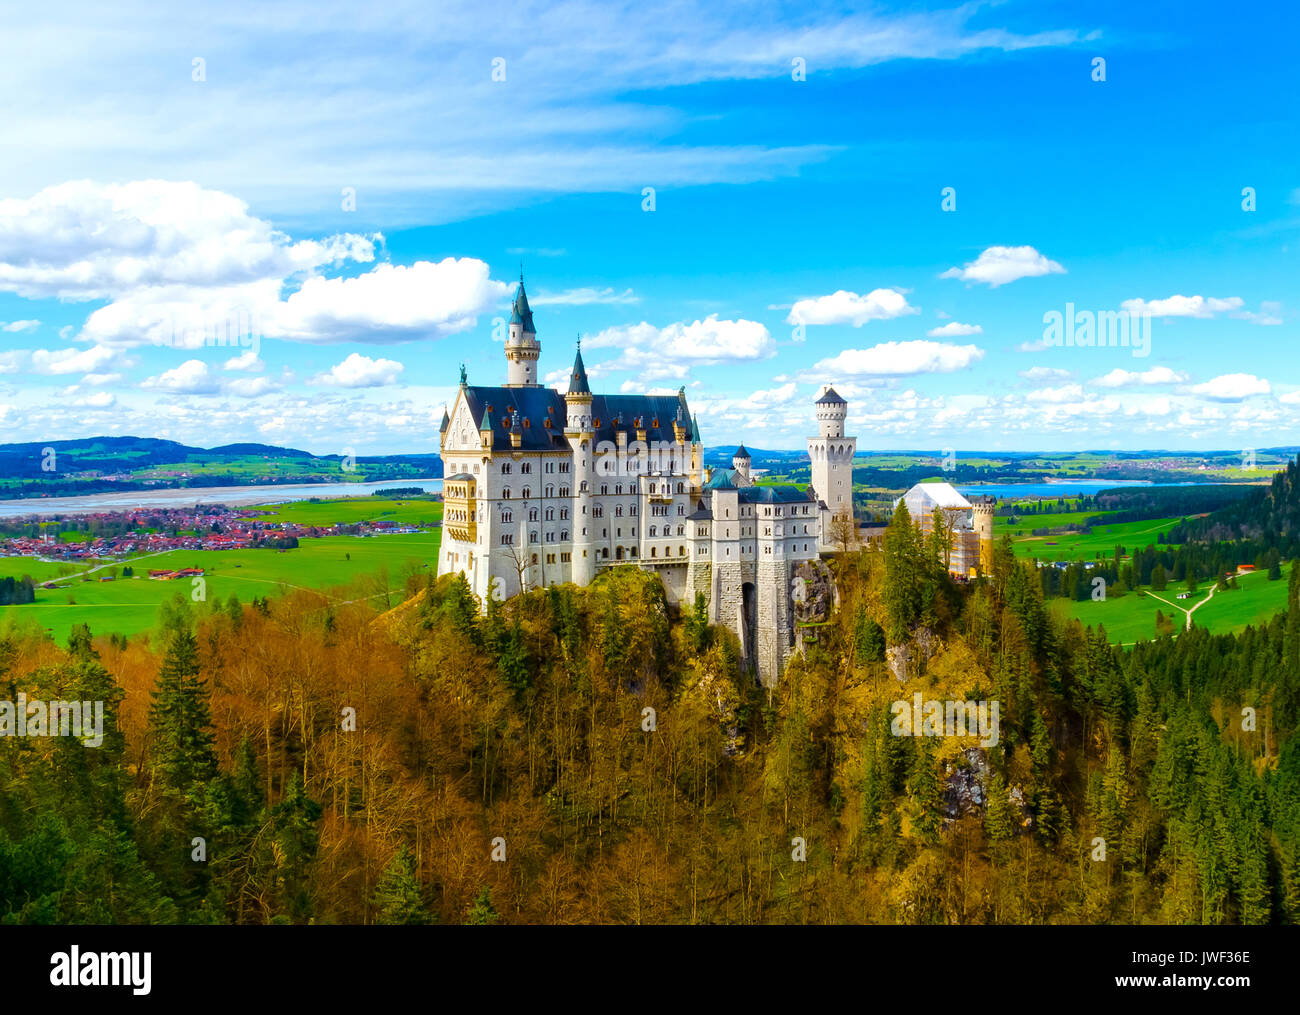 view of the famous tourist attraction in the Bavarian Alps - the 19th century Neuschwanstein castle. - Stock Image